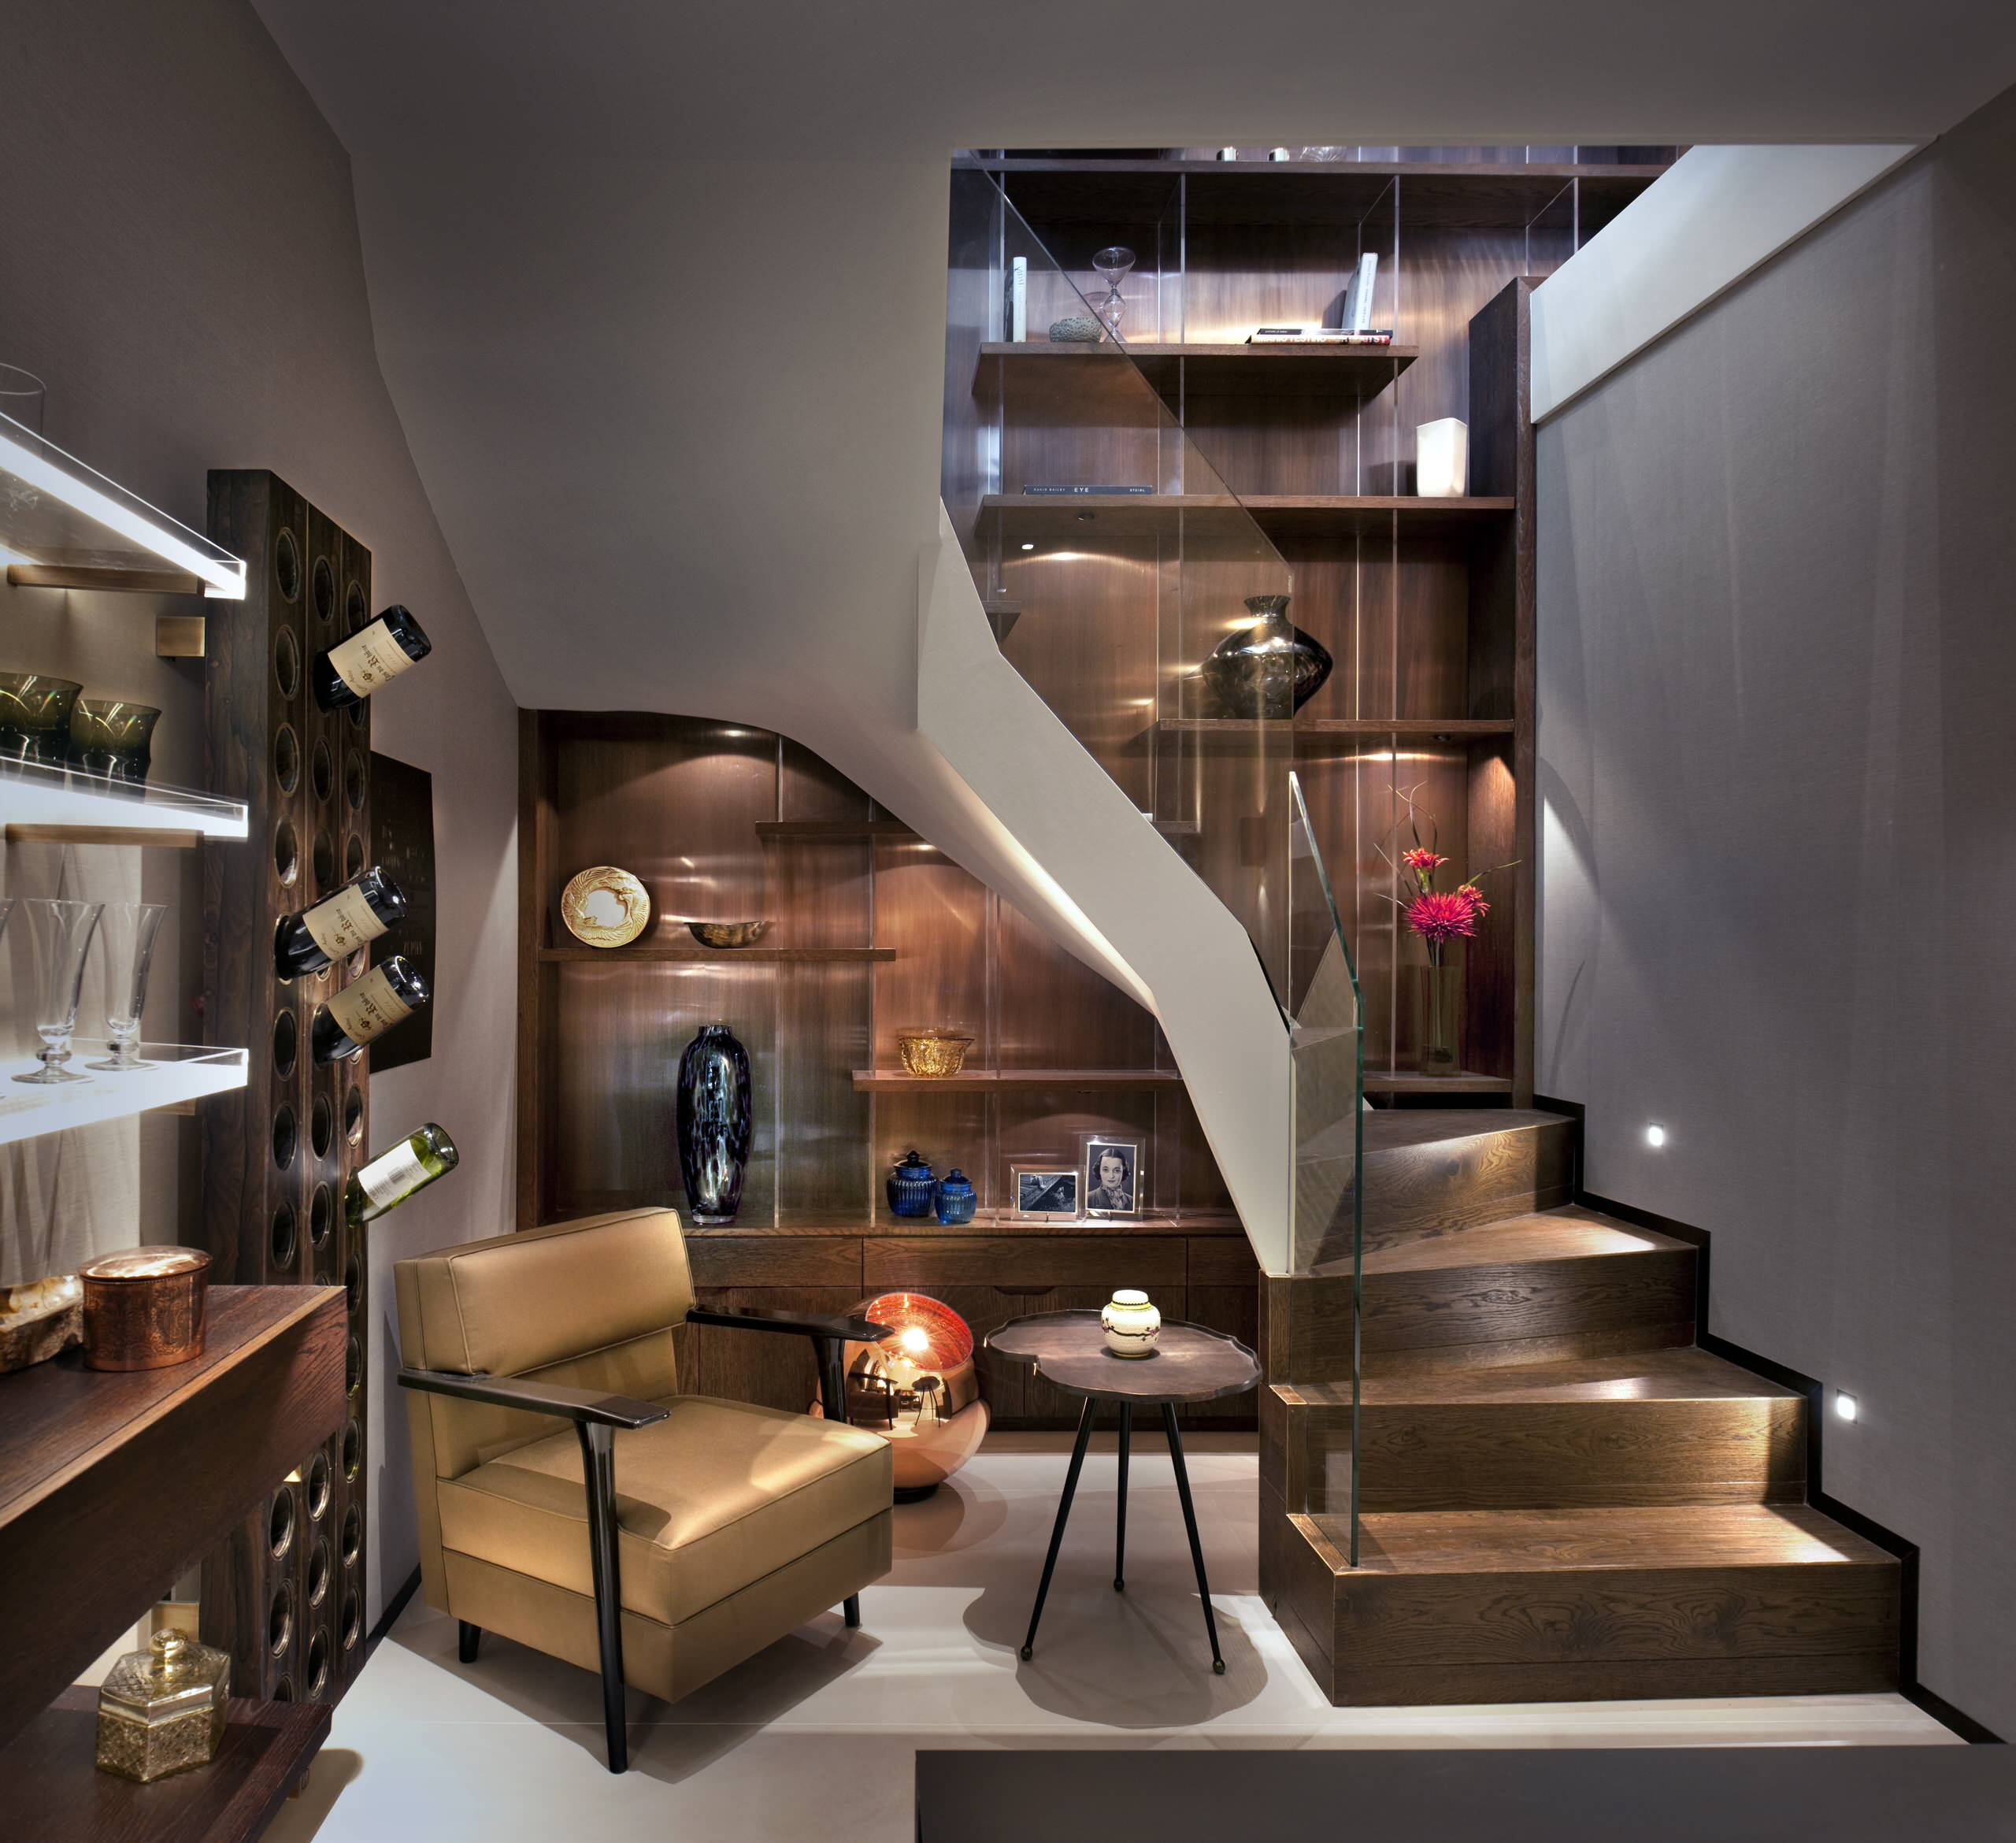 75 Beautiful Small Basement Pictures Ideas April 2021 Houzz